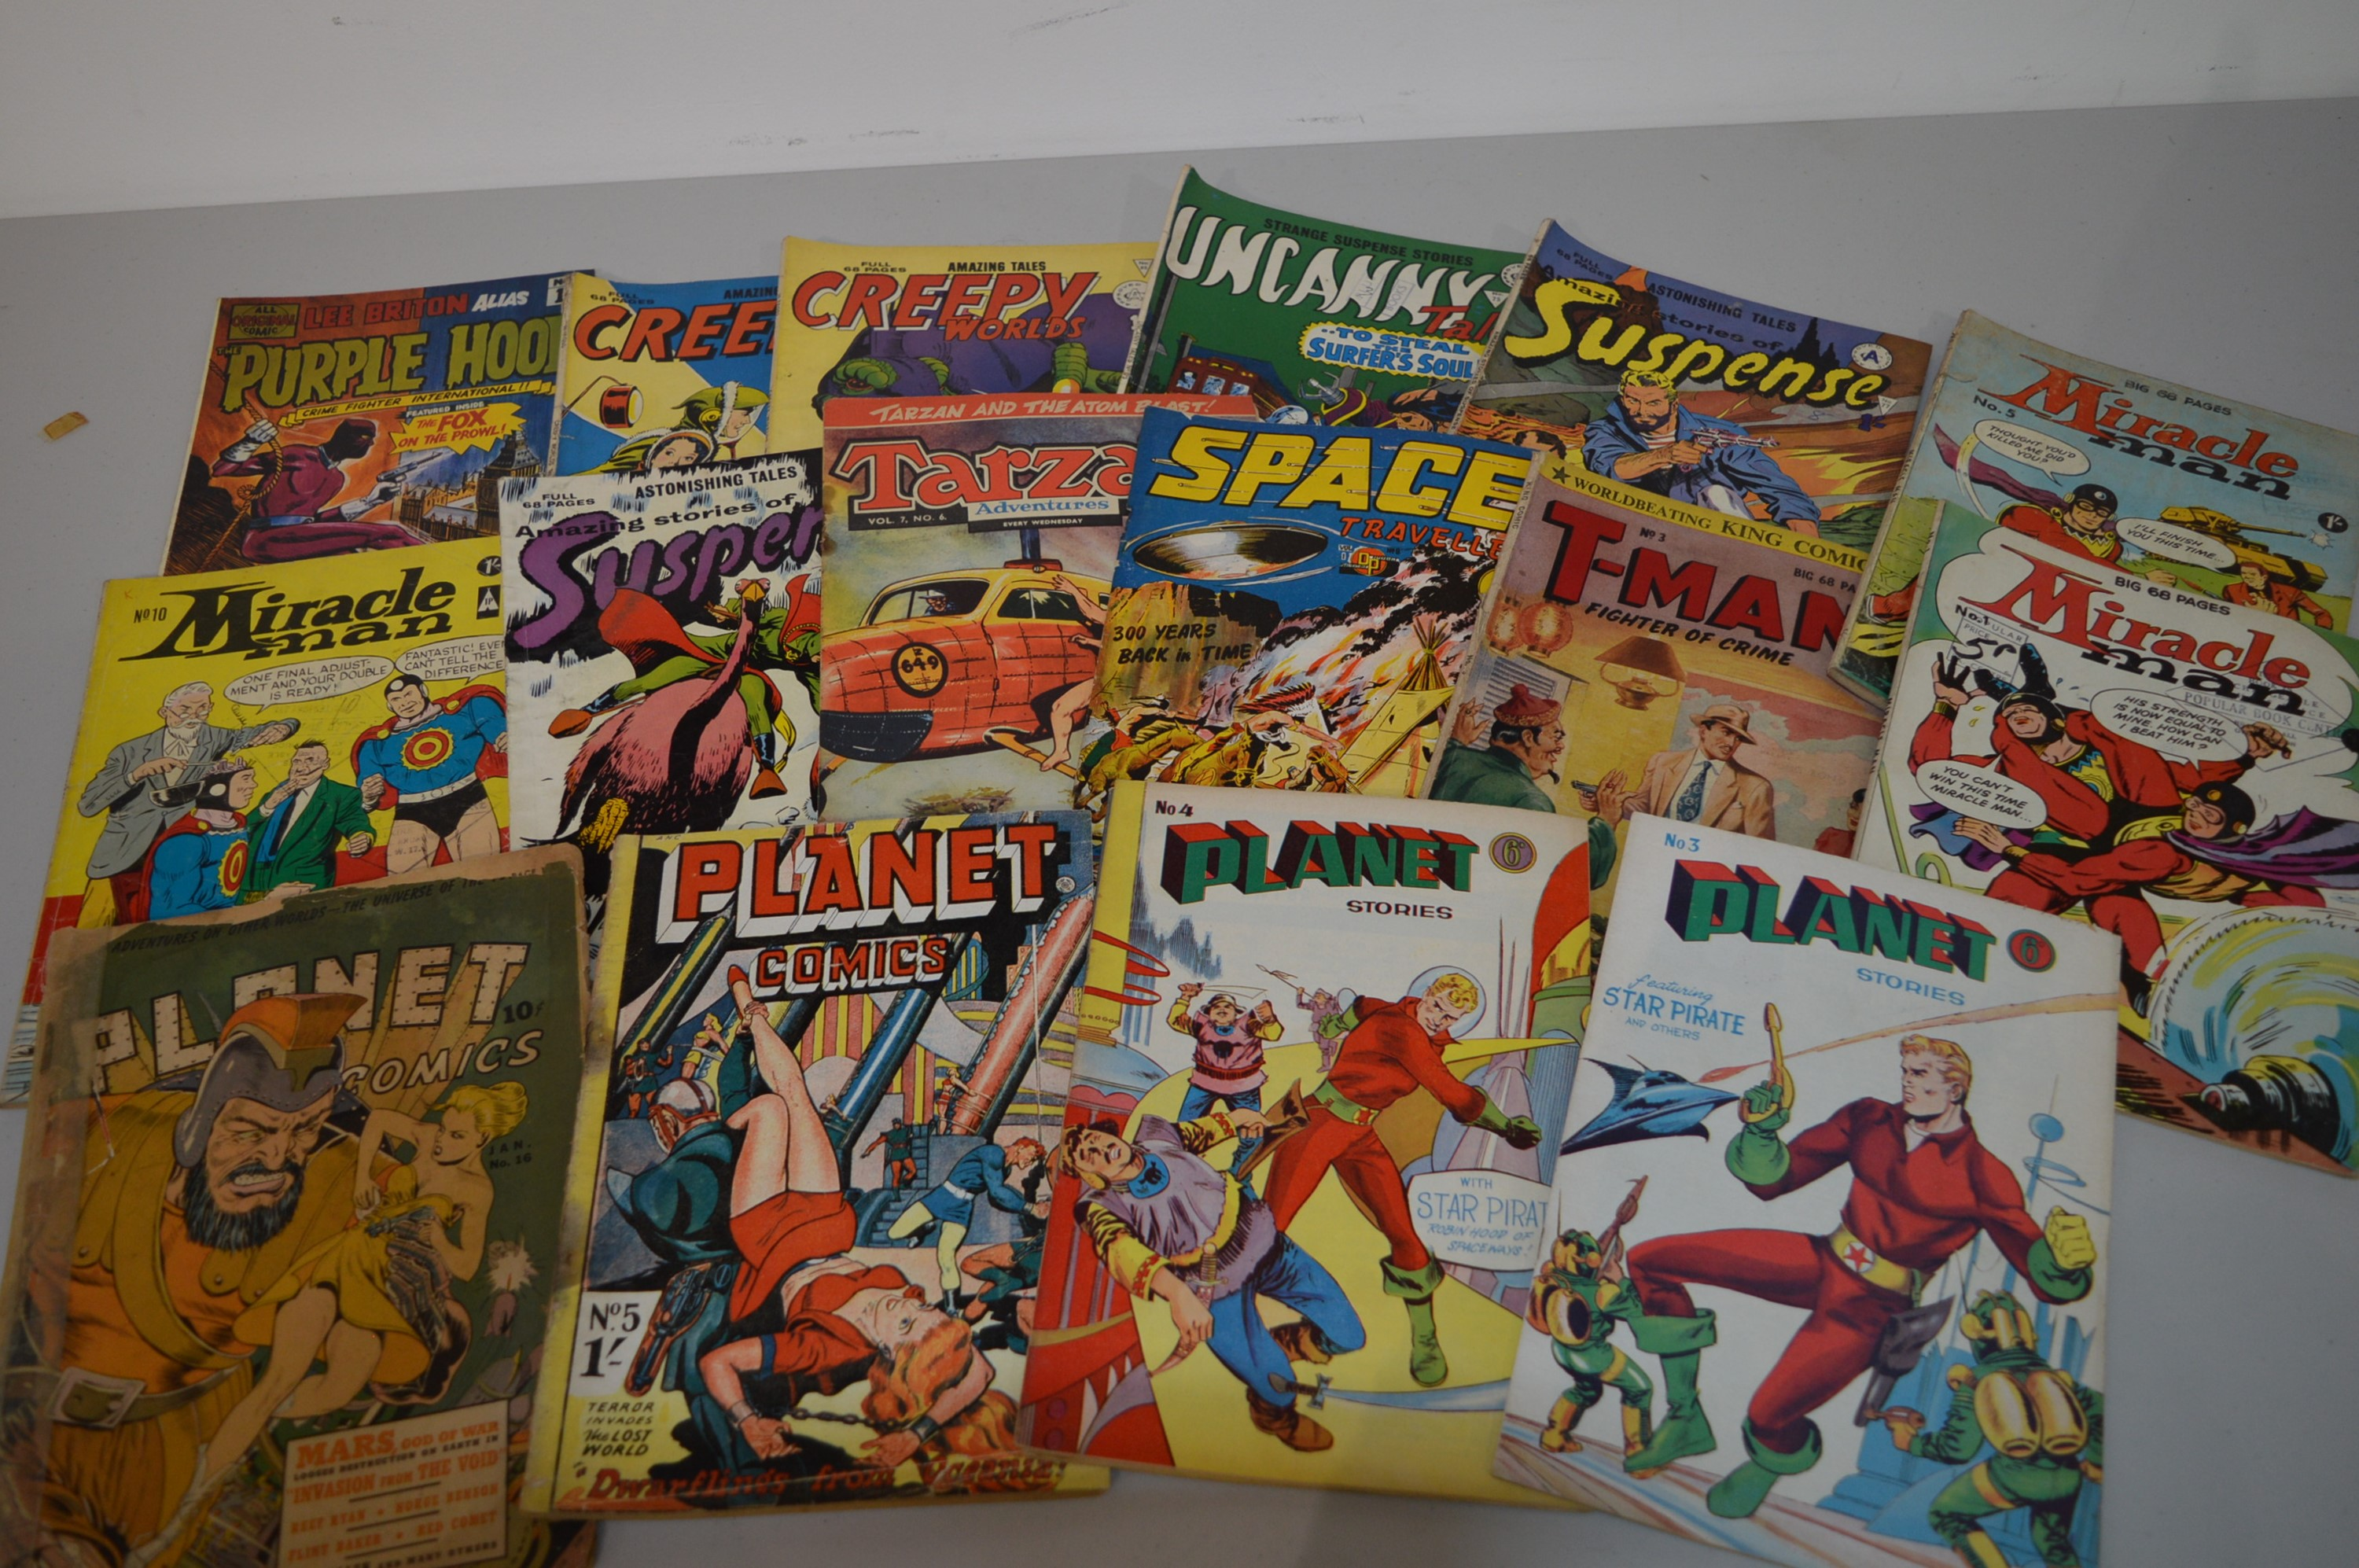 Planet Comics, Miracle Man, T-Man; and other British reprint comics.